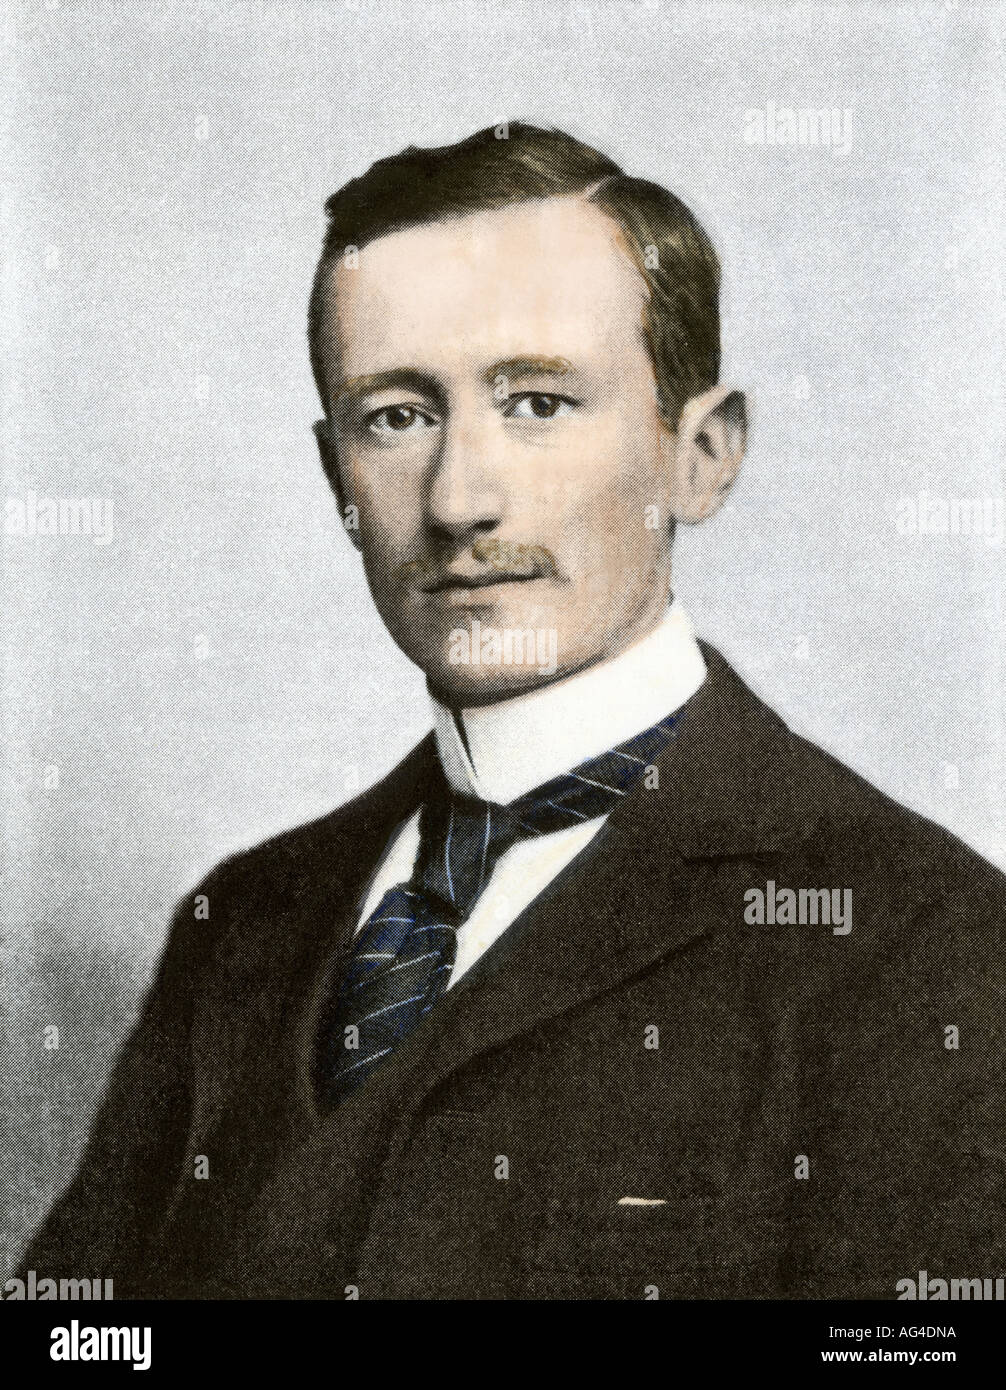 Portrait of Guglielmo Marconi. Hand-colored halftone of a photograph - Stock Image